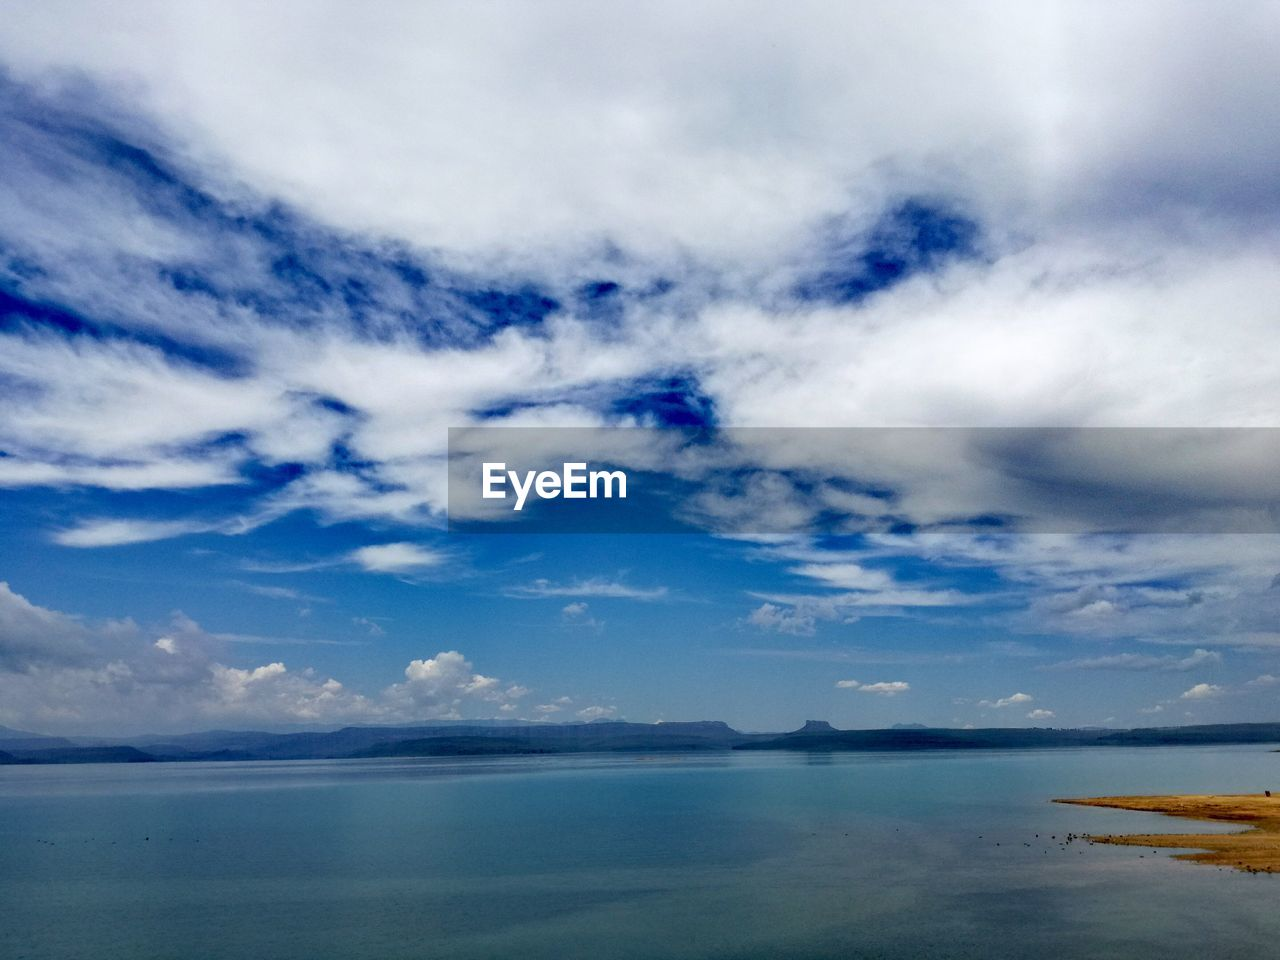 sky, cloud - sky, beauty in nature, scenics - nature, water, tranquility, tranquil scene, sea, nature, waterfront, day, no people, blue, horizon, idyllic, horizon over water, non-urban scene, outdoors, beach